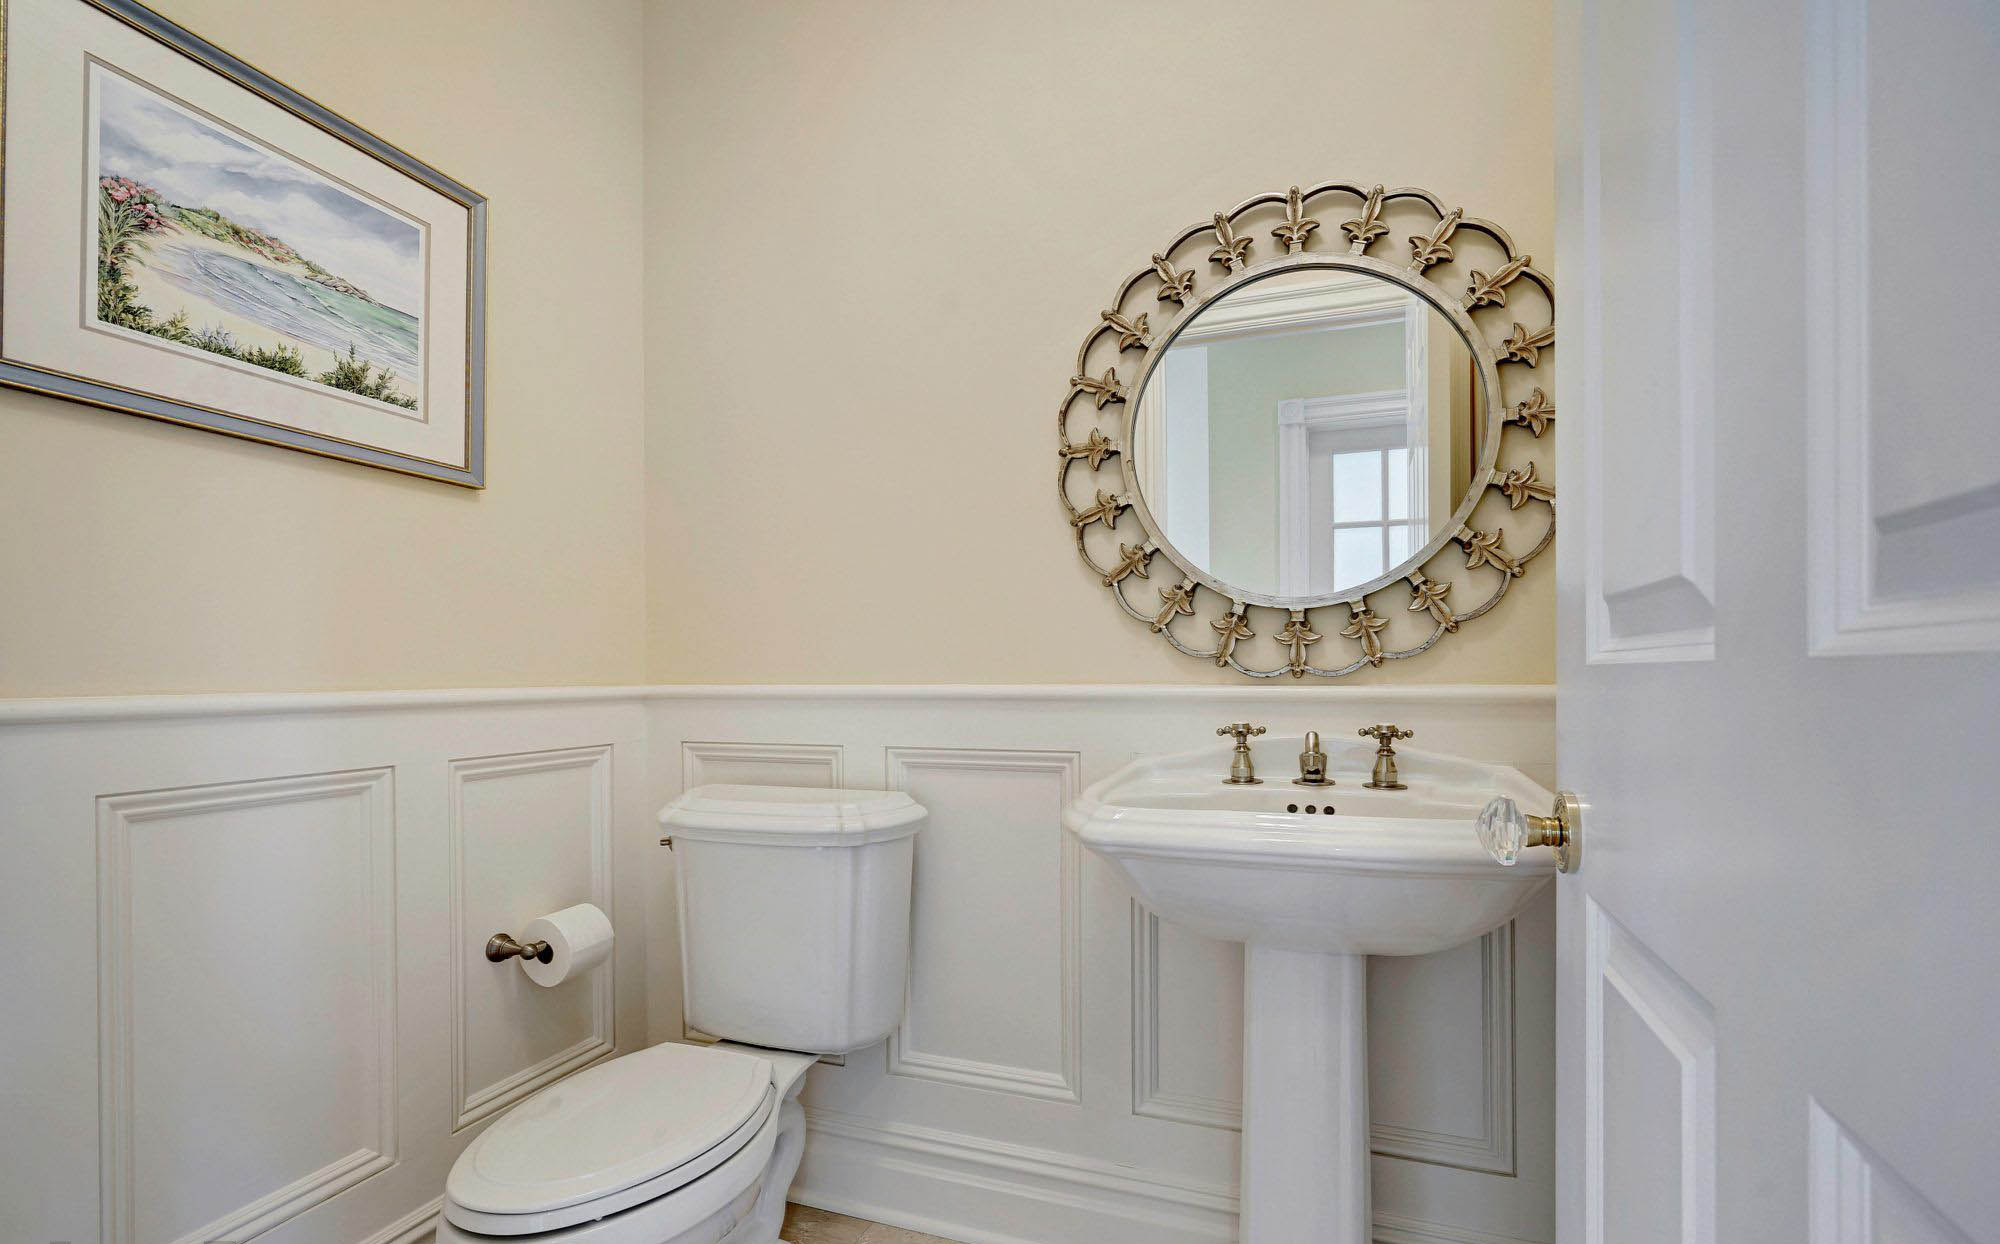 Beautiful 1/2 bath with white wainscoting. Colonial style trim. Light cream colored walls. White sink and toilet. What a nice, clean bathroom design.